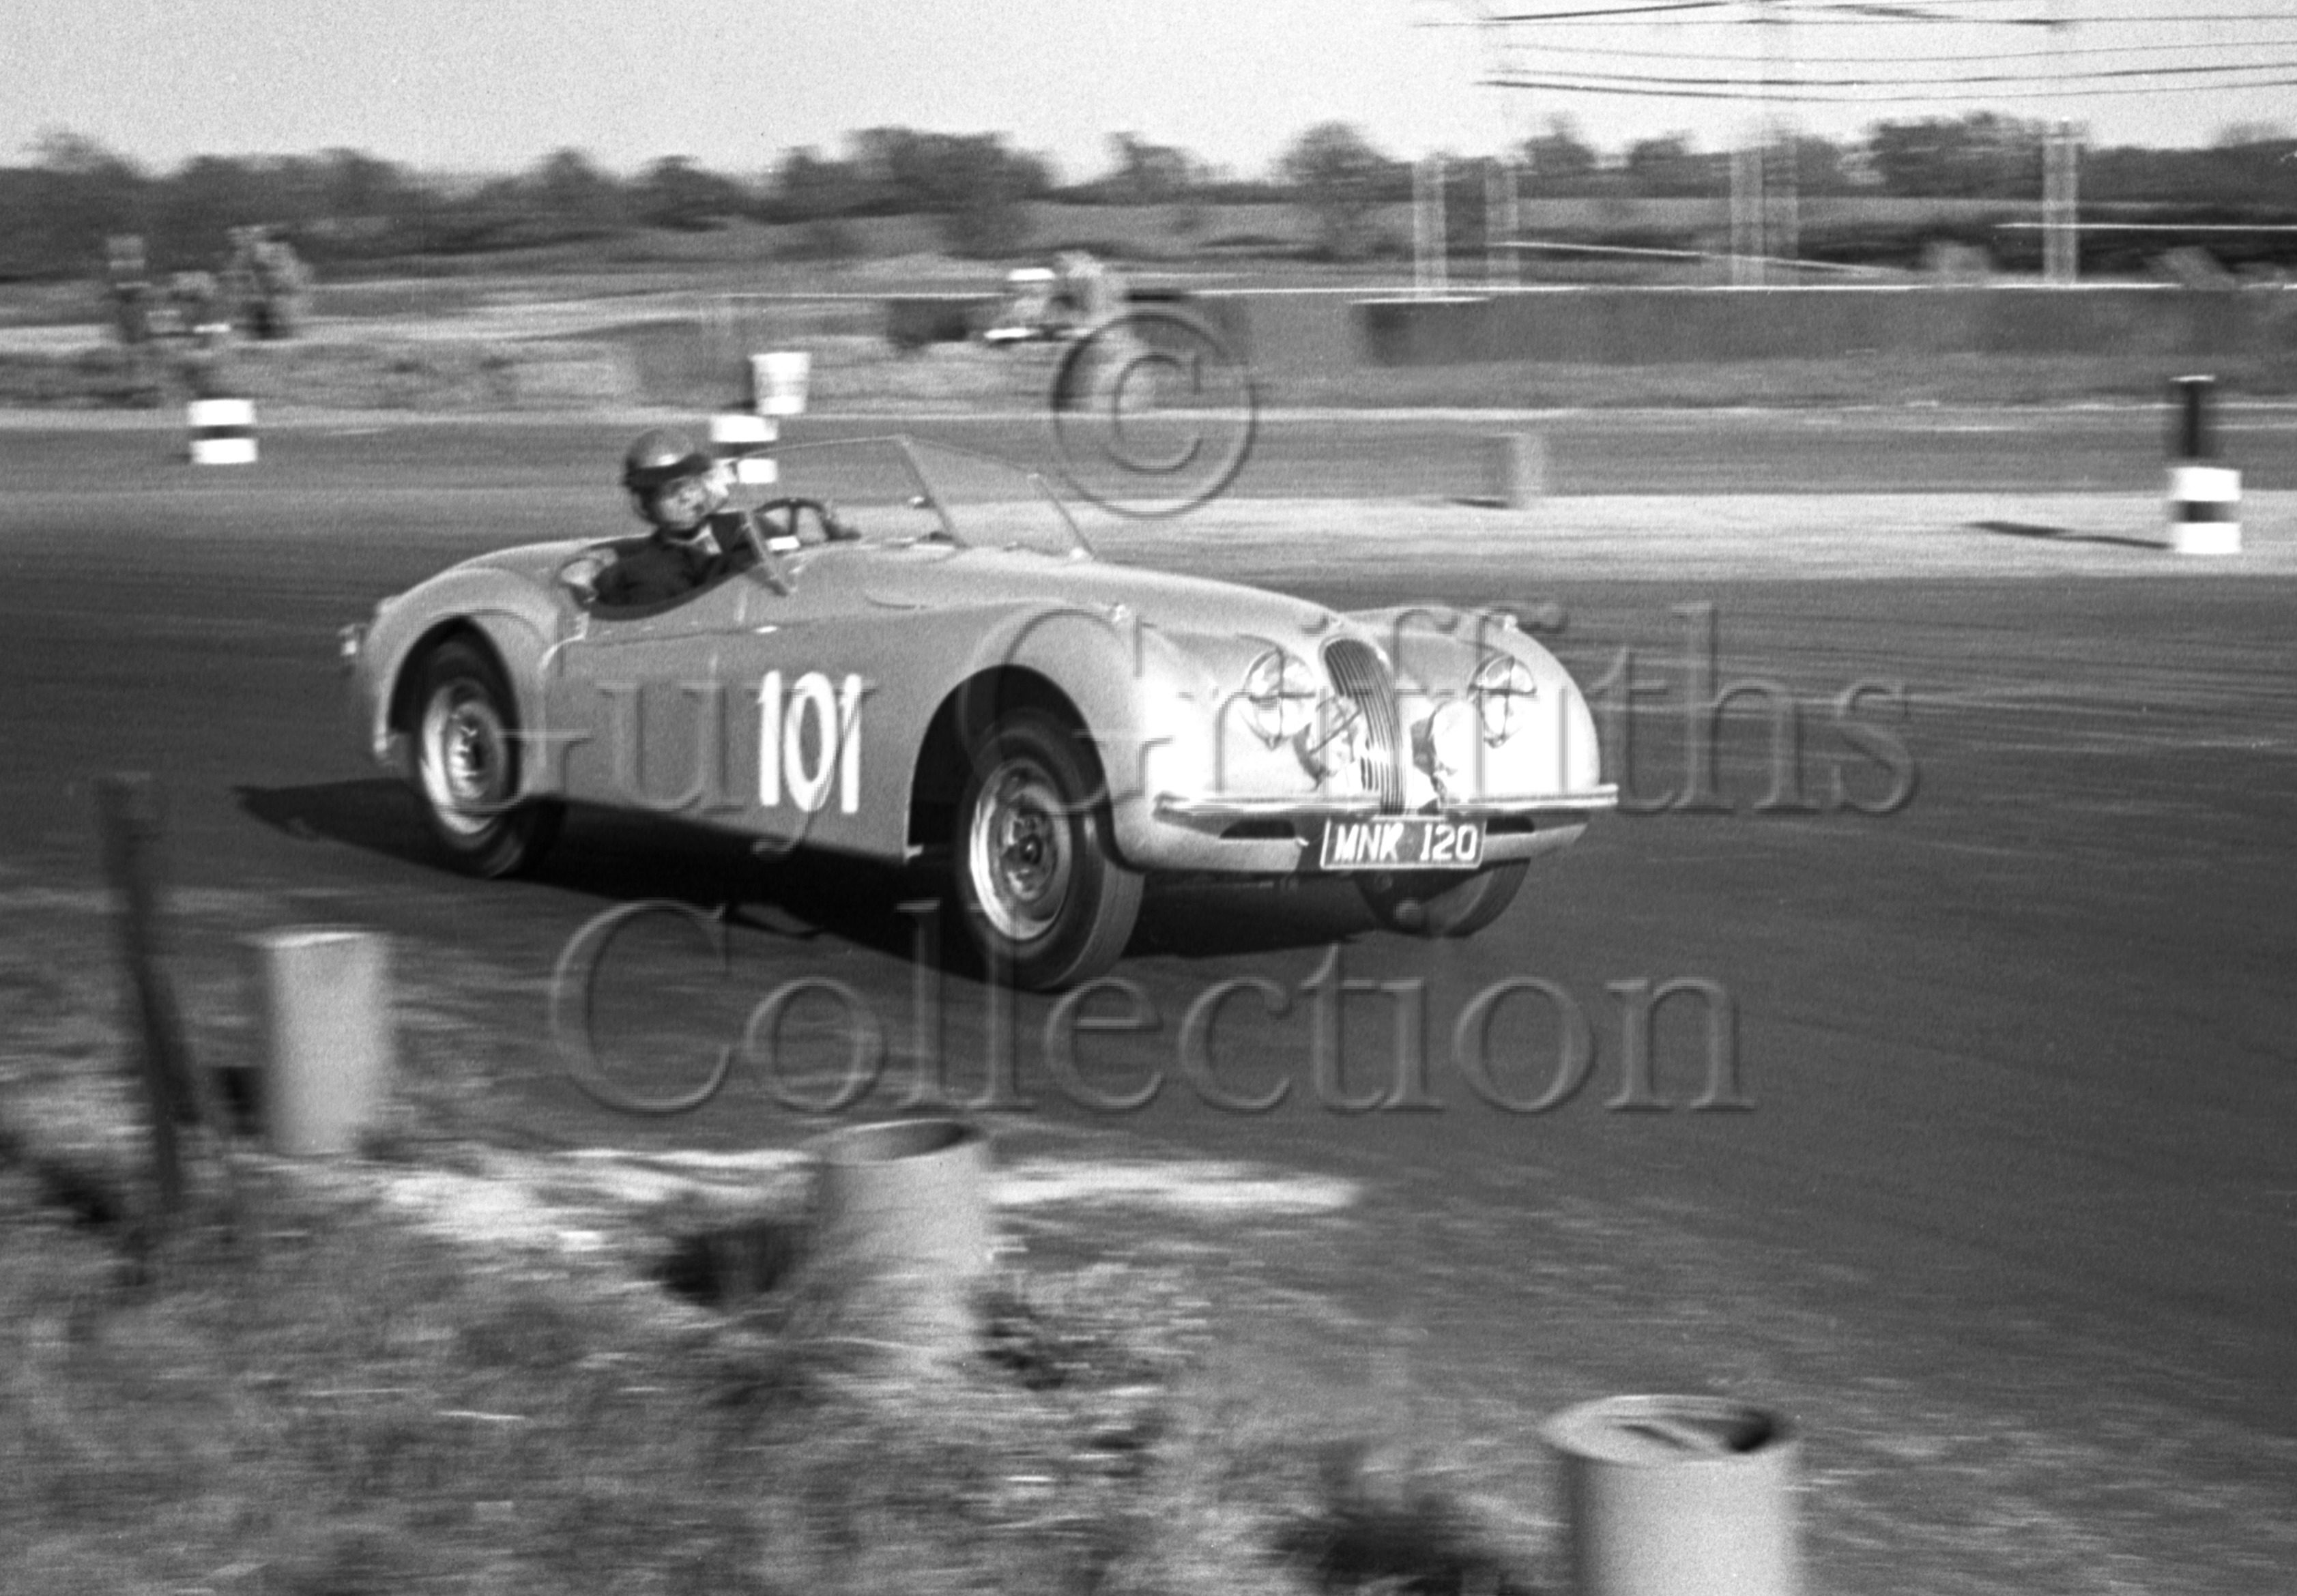 44-903–D-Russell–Jaguar–Silverstone–02-06-1951.jpg - The Guy Griffiths Collection